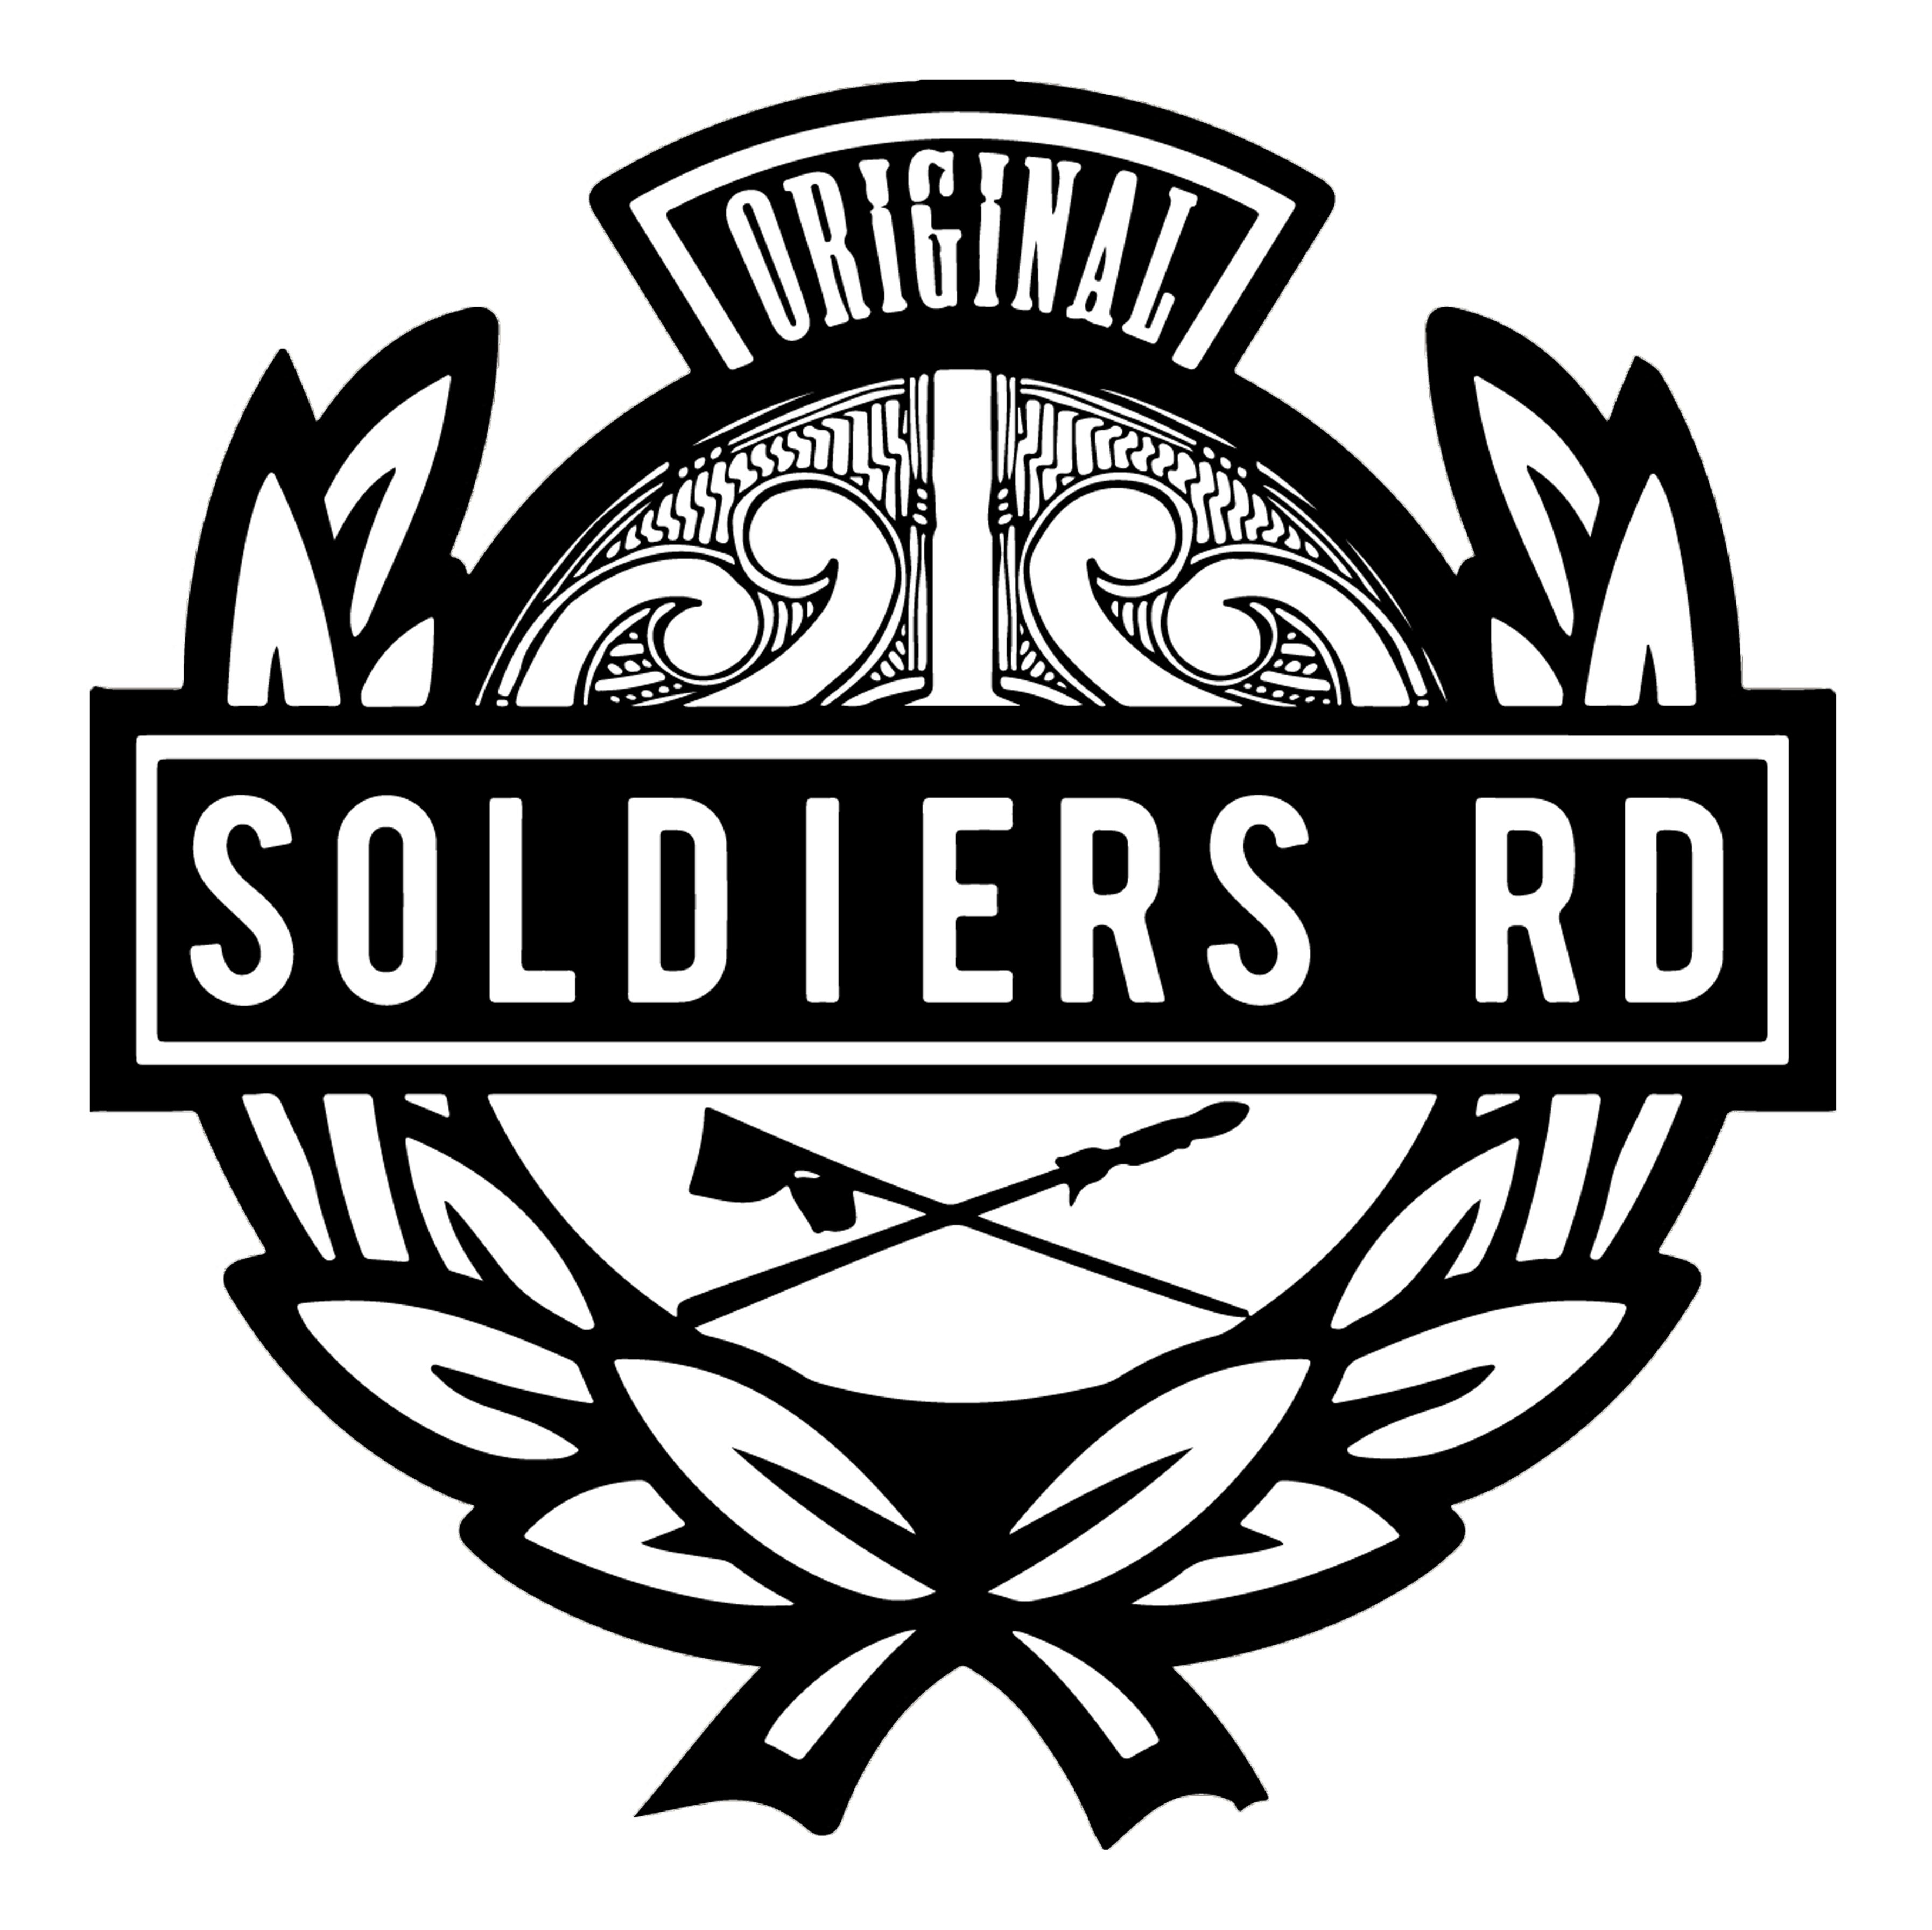 Soldiers Rd